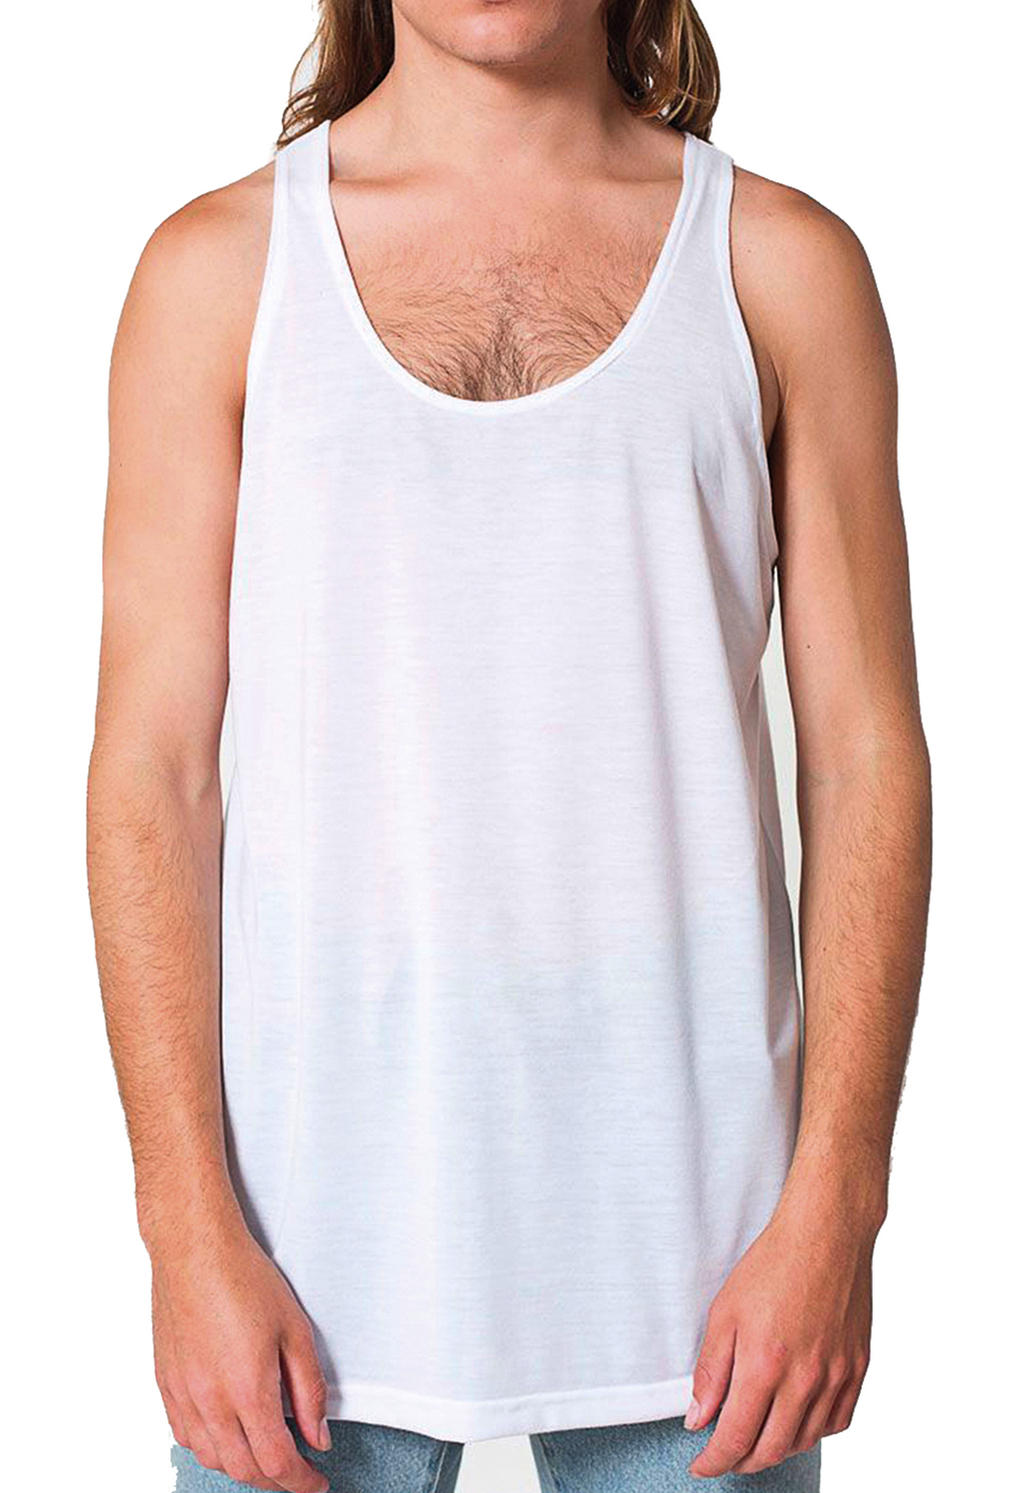 Unisex Sublimation Tank